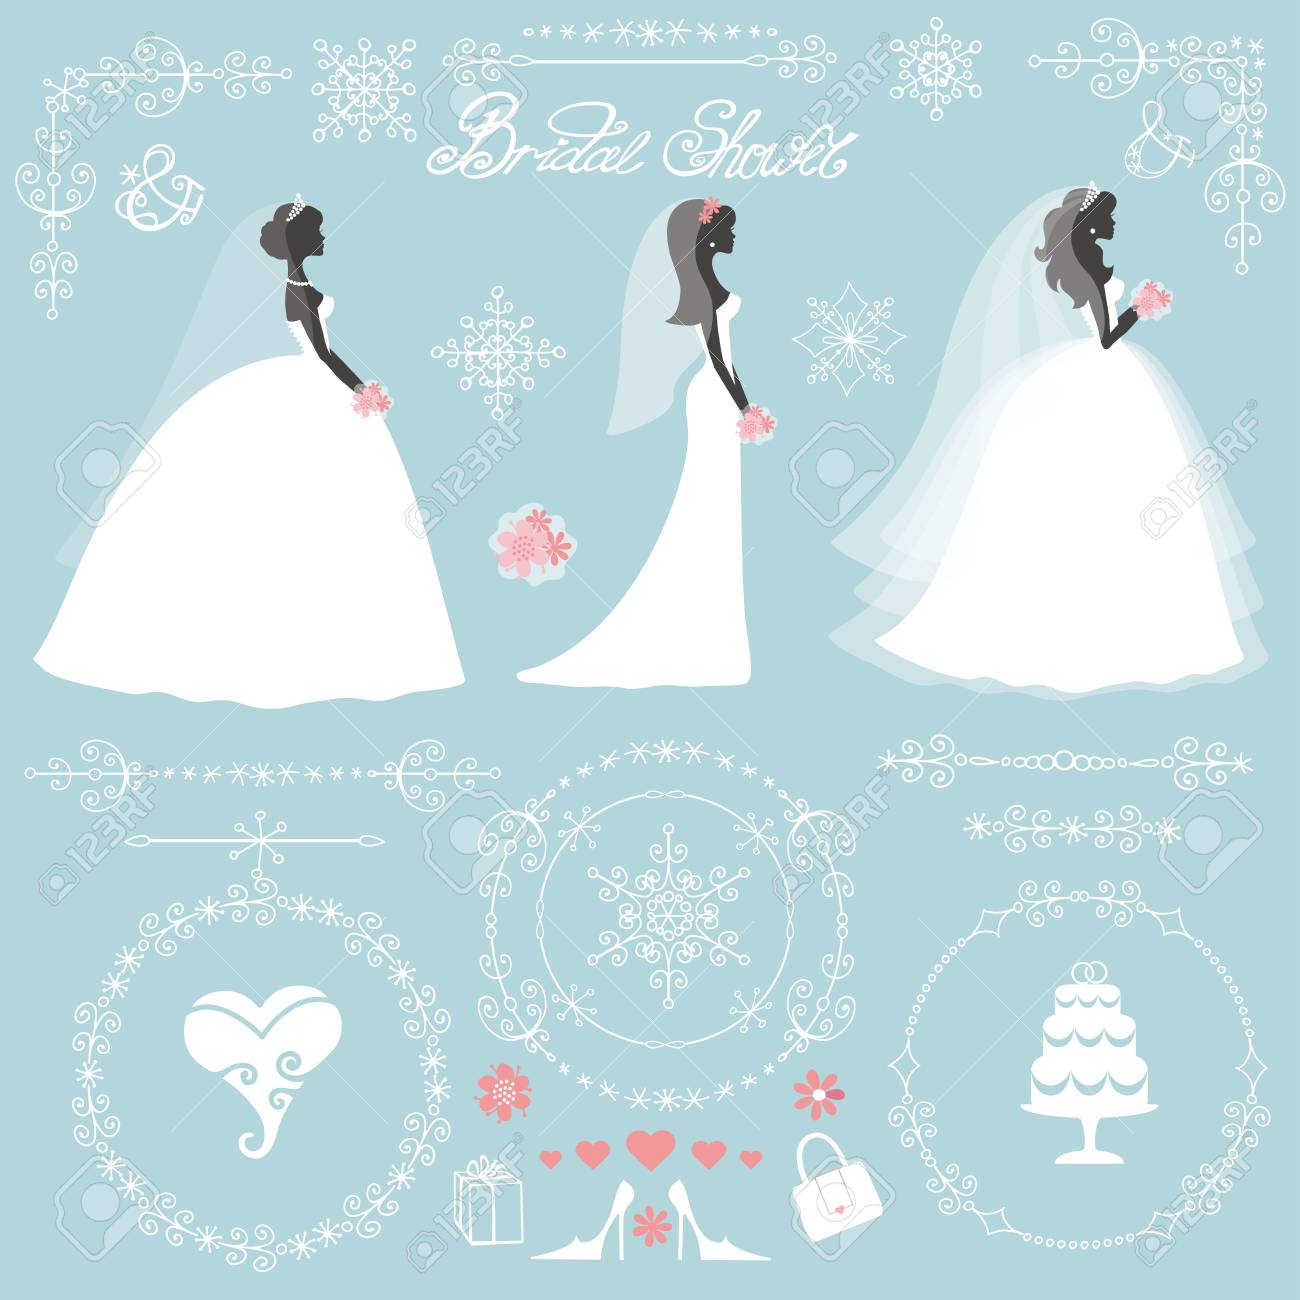 weddingbride in different dress stylewinter bridal shower decor setcartoon woman